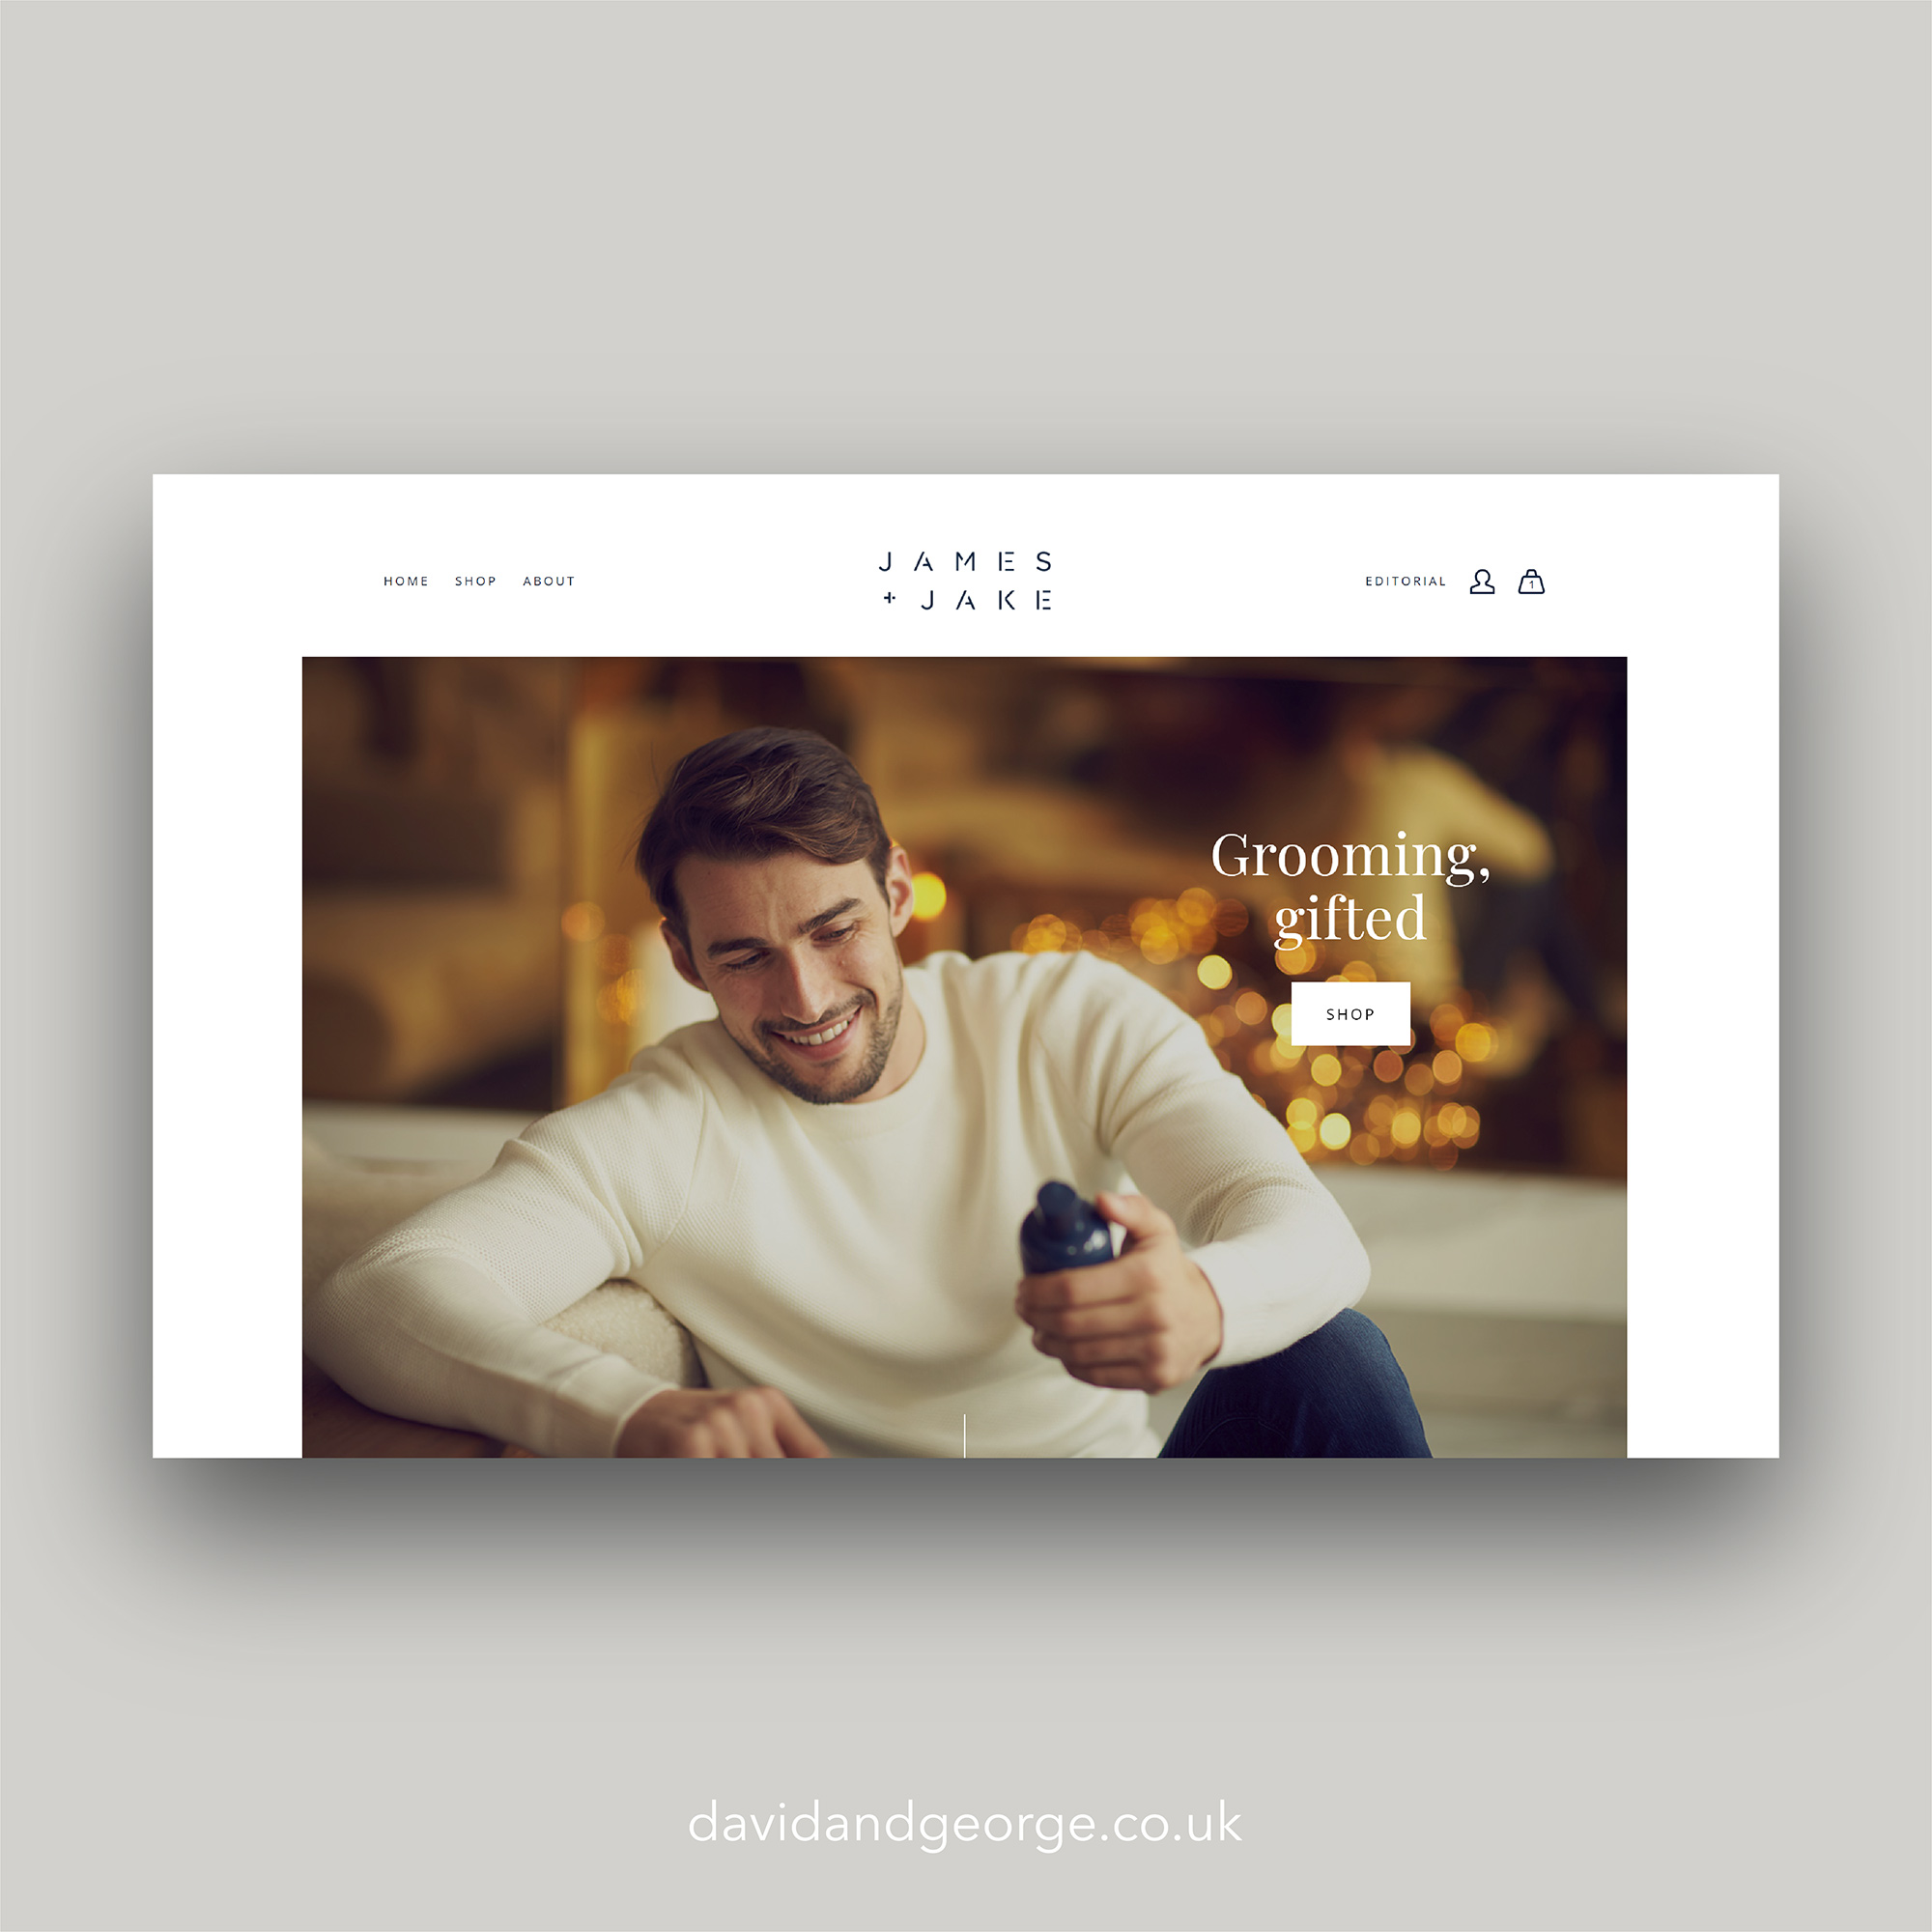 squarespace-website-design-london-edinburgh-uk-david-and-george-james-and-jake-mens-grooming-website-store-ecommerce.jpg